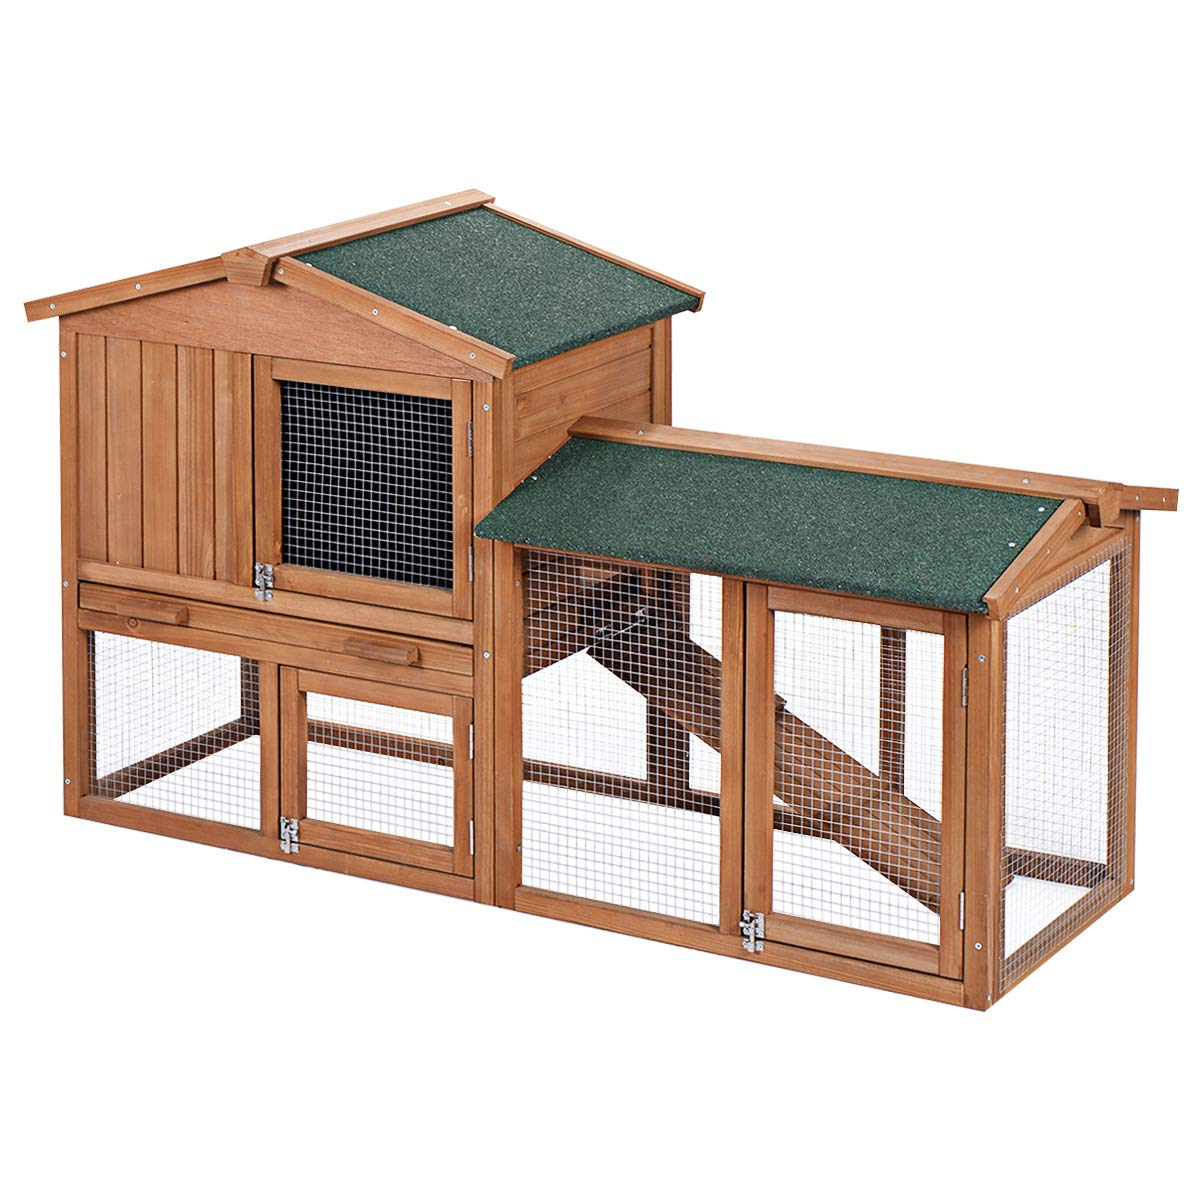 Tangkula Chicken Coop, Wooden Large Outdoor Poultry Cage (Such as Bunny/Rabbit/Hen) with Ventilation Door and Removable Tray & Ramp, 58'' Chicken Rabbit Hutch by Tangkula